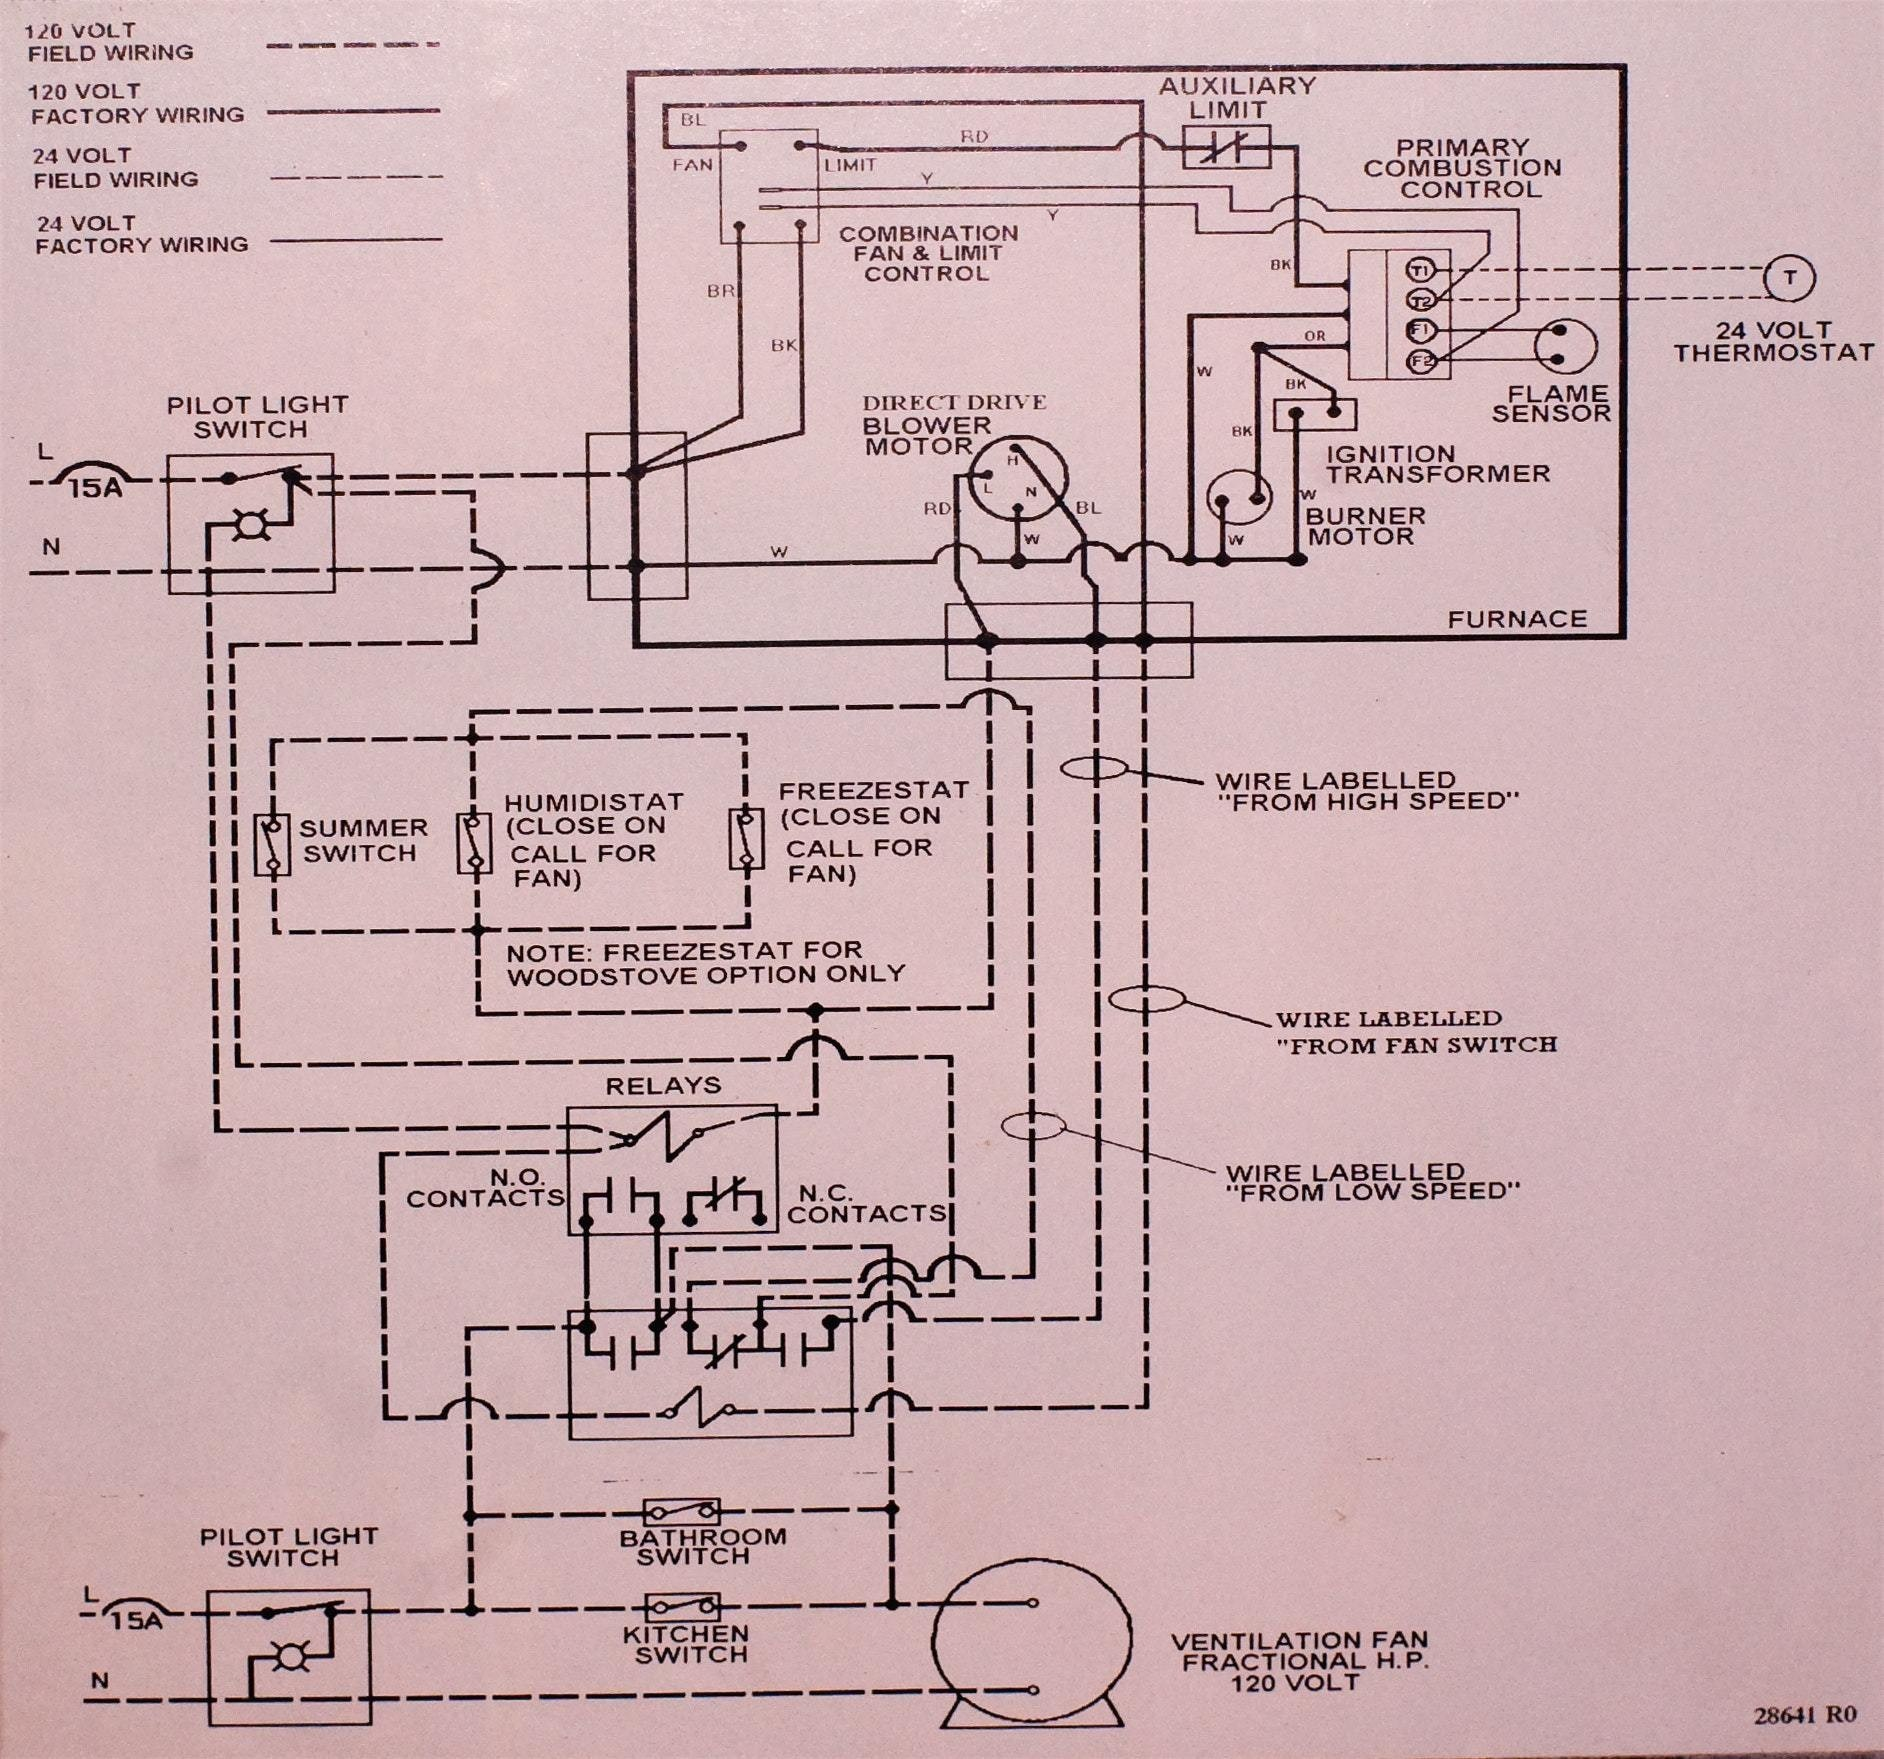 hight resolution of electric furnace wiring diagram awesome wonderful miller oil